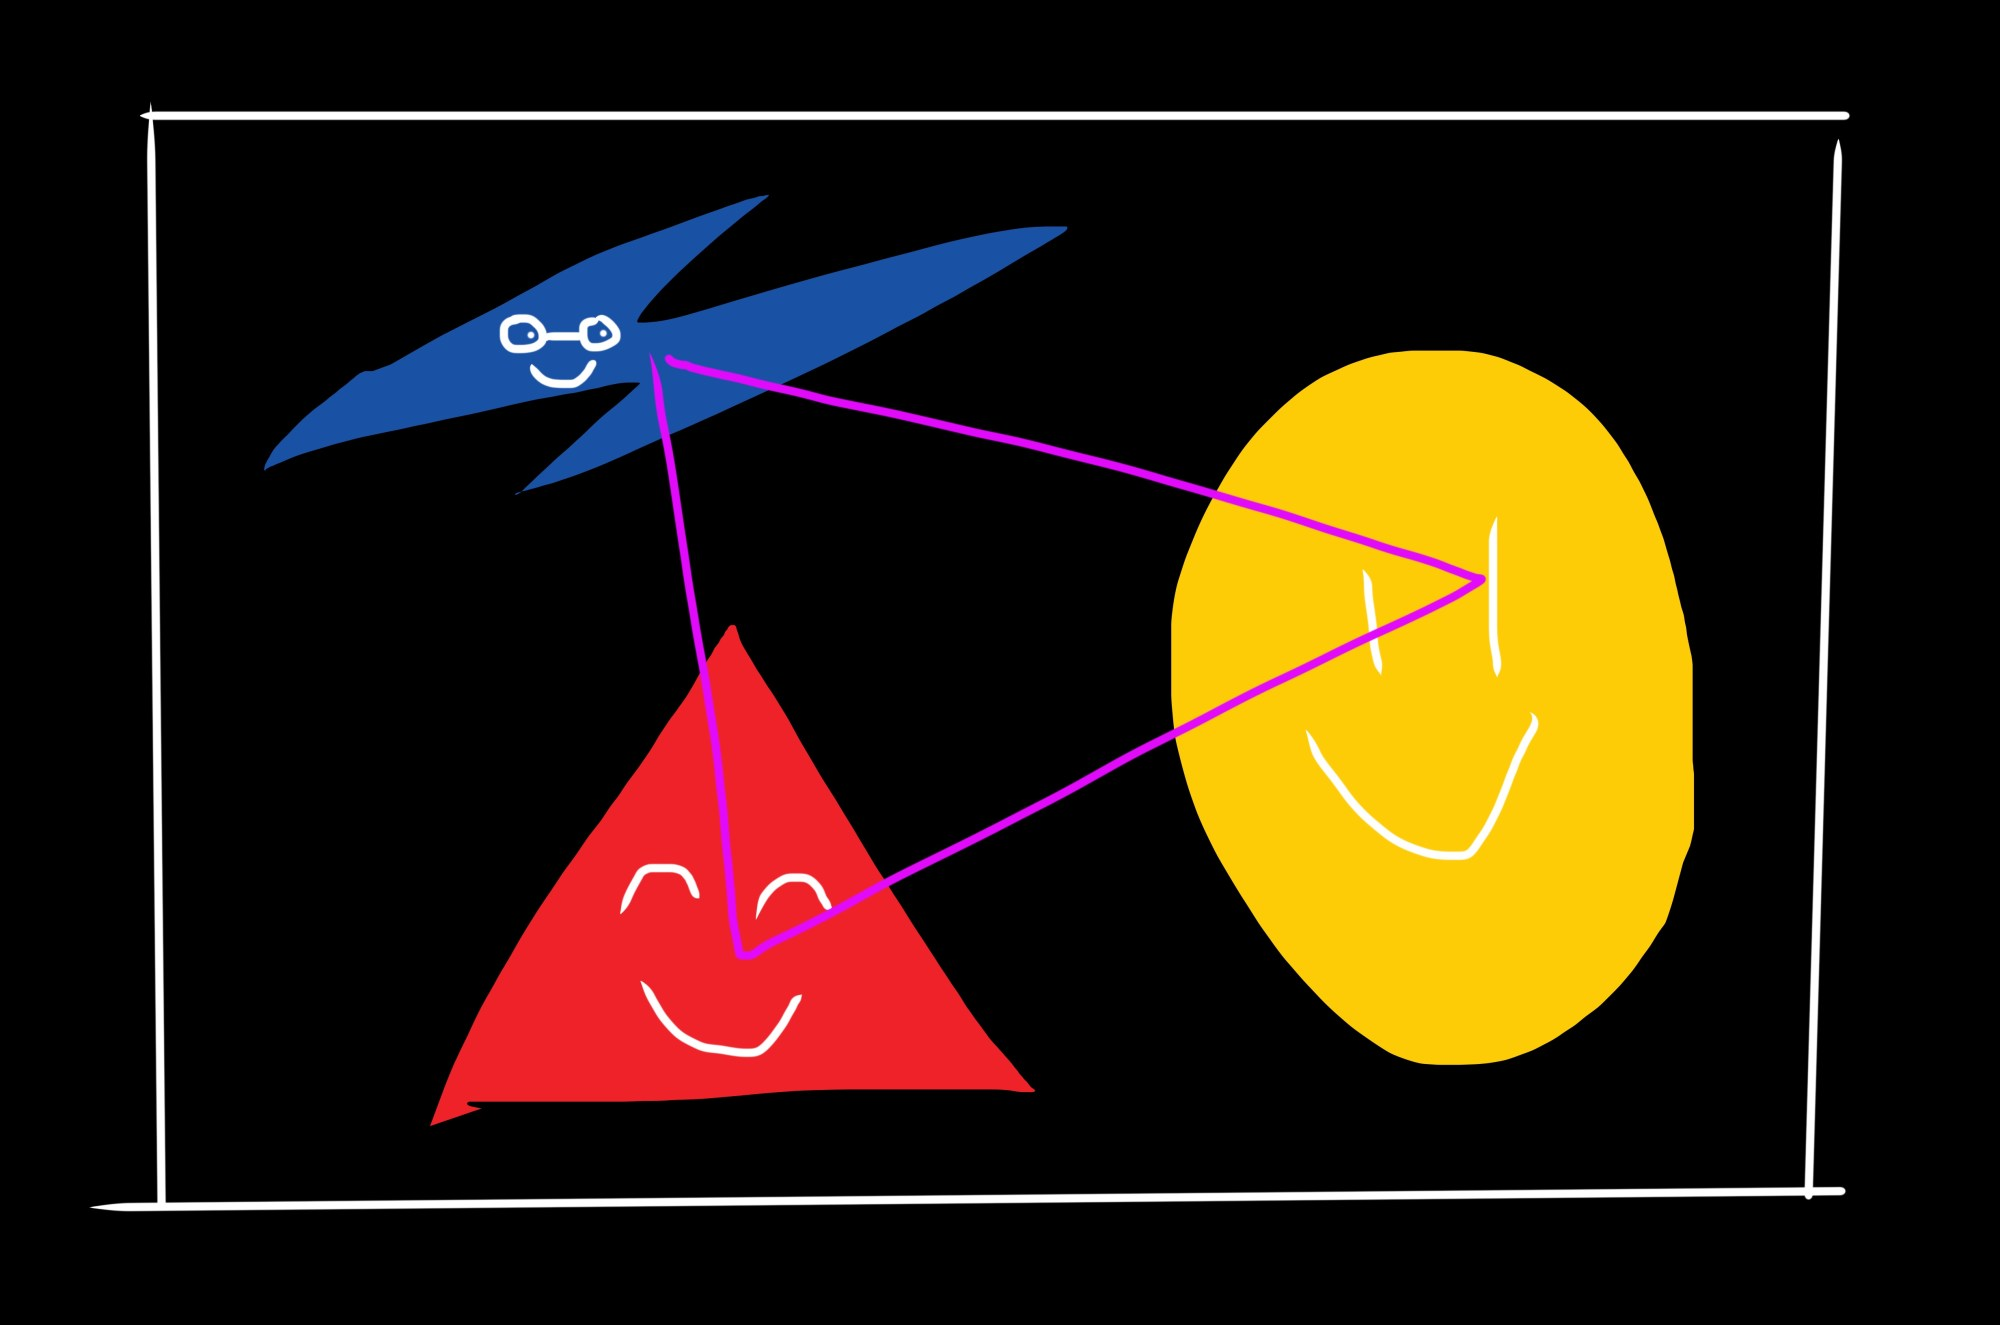 Triangle composition of these three guys, shown in pink